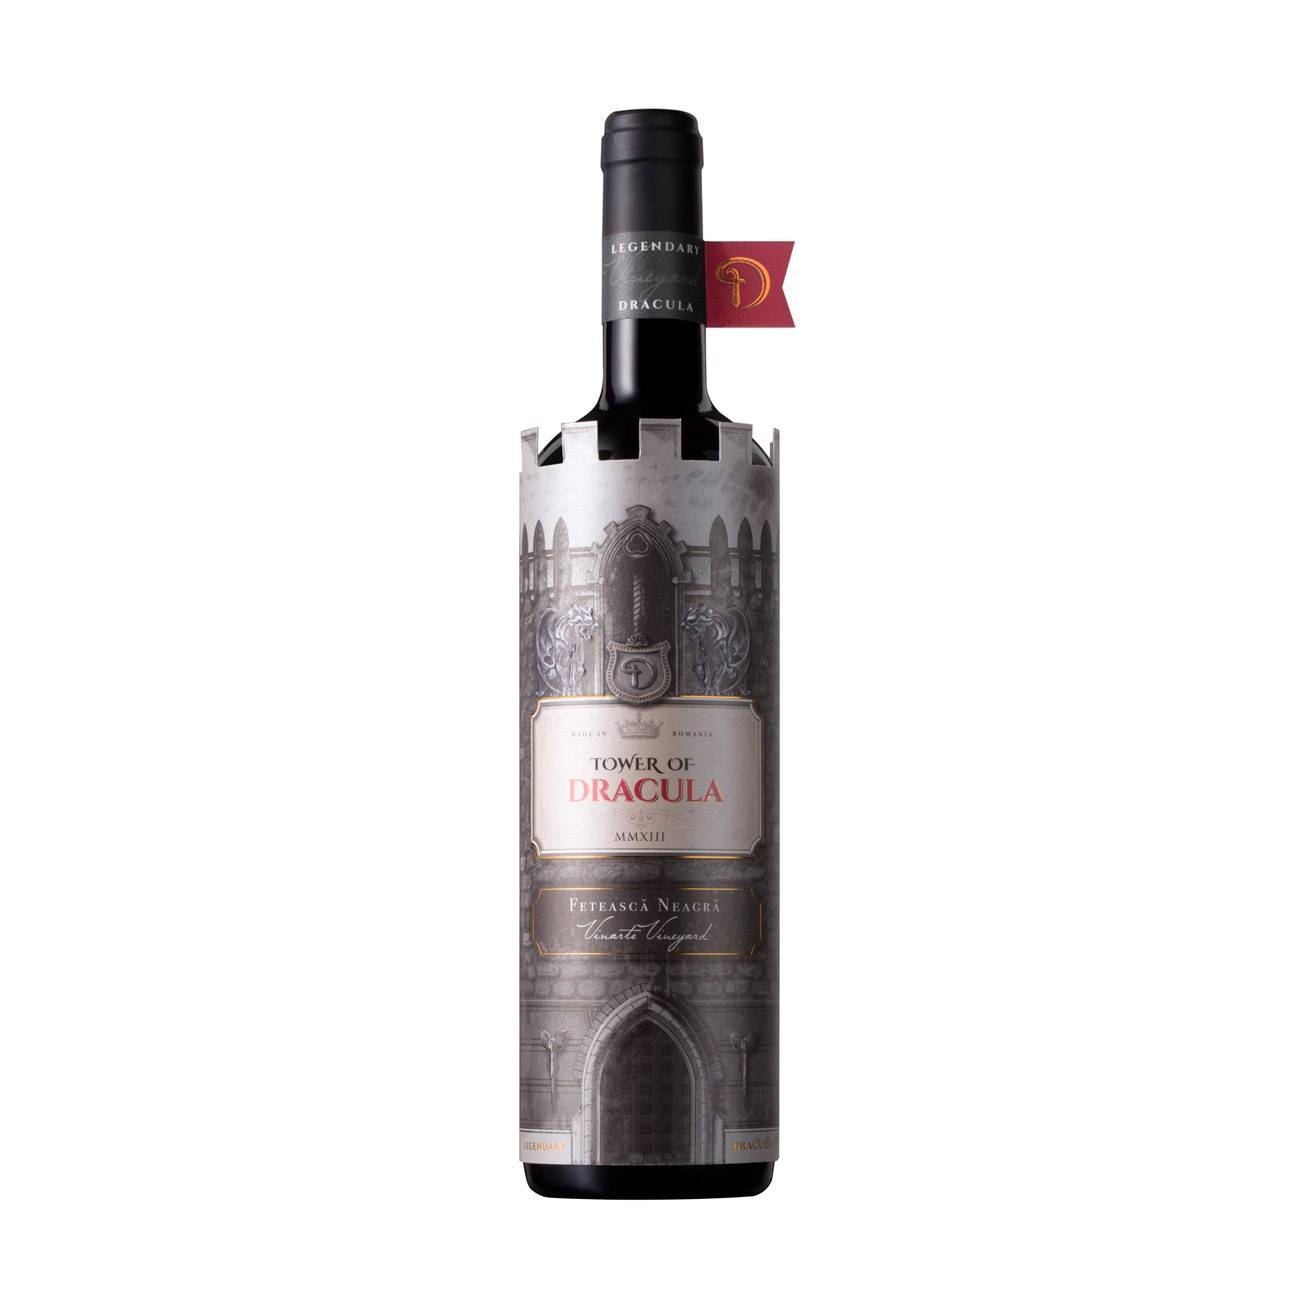 TOWER OF DRACULA FETEASCA NEAGRA 750 ML 750 Ml